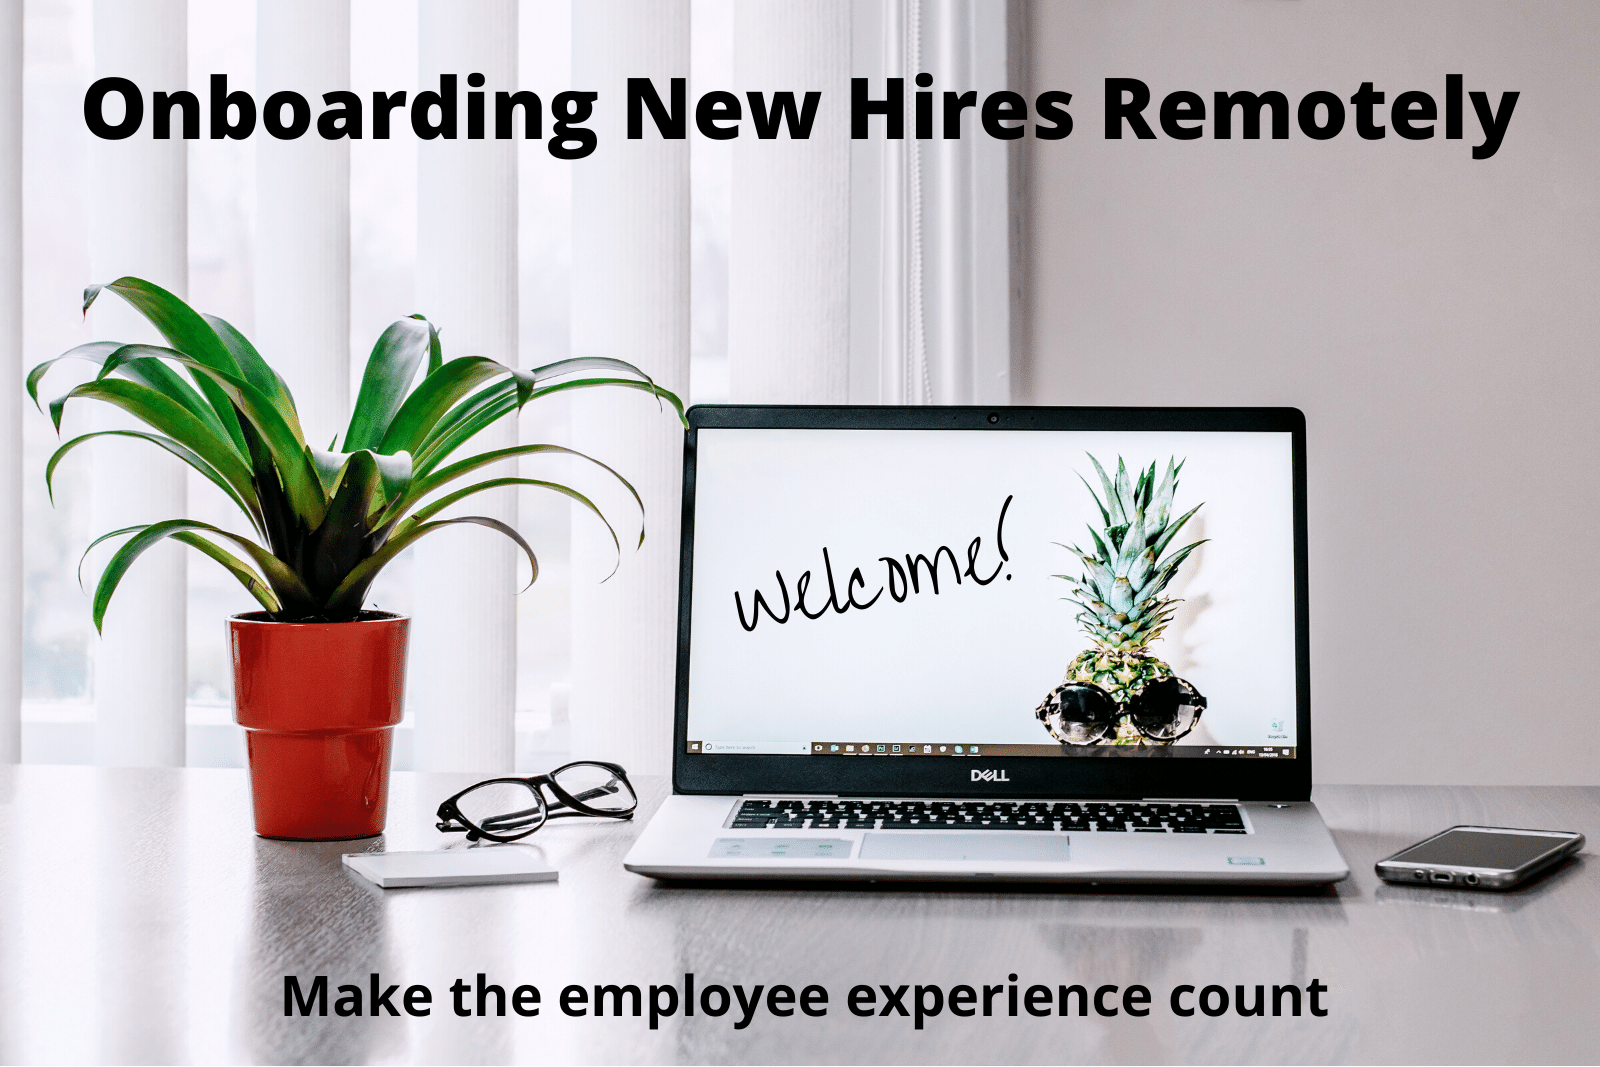 Onboarding new hires remotely